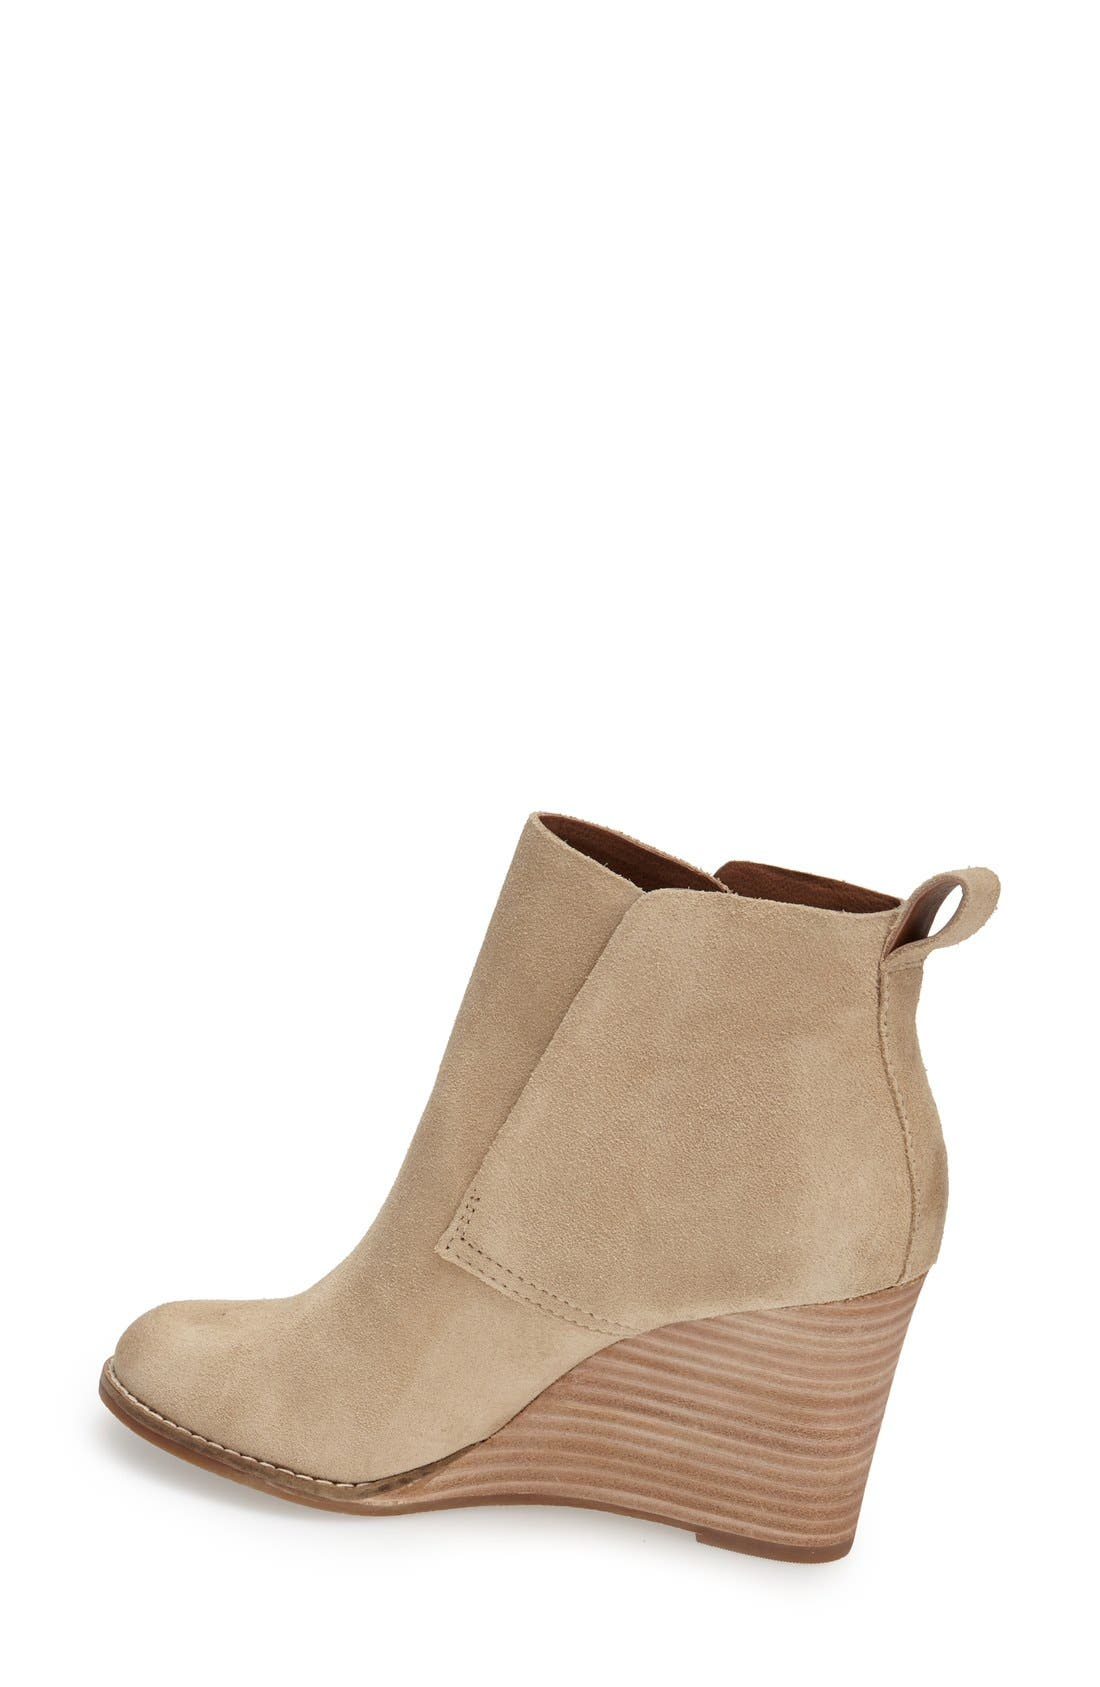 'Yoniana' Wedge Bootie,                             Alternate thumbnail 15, color,